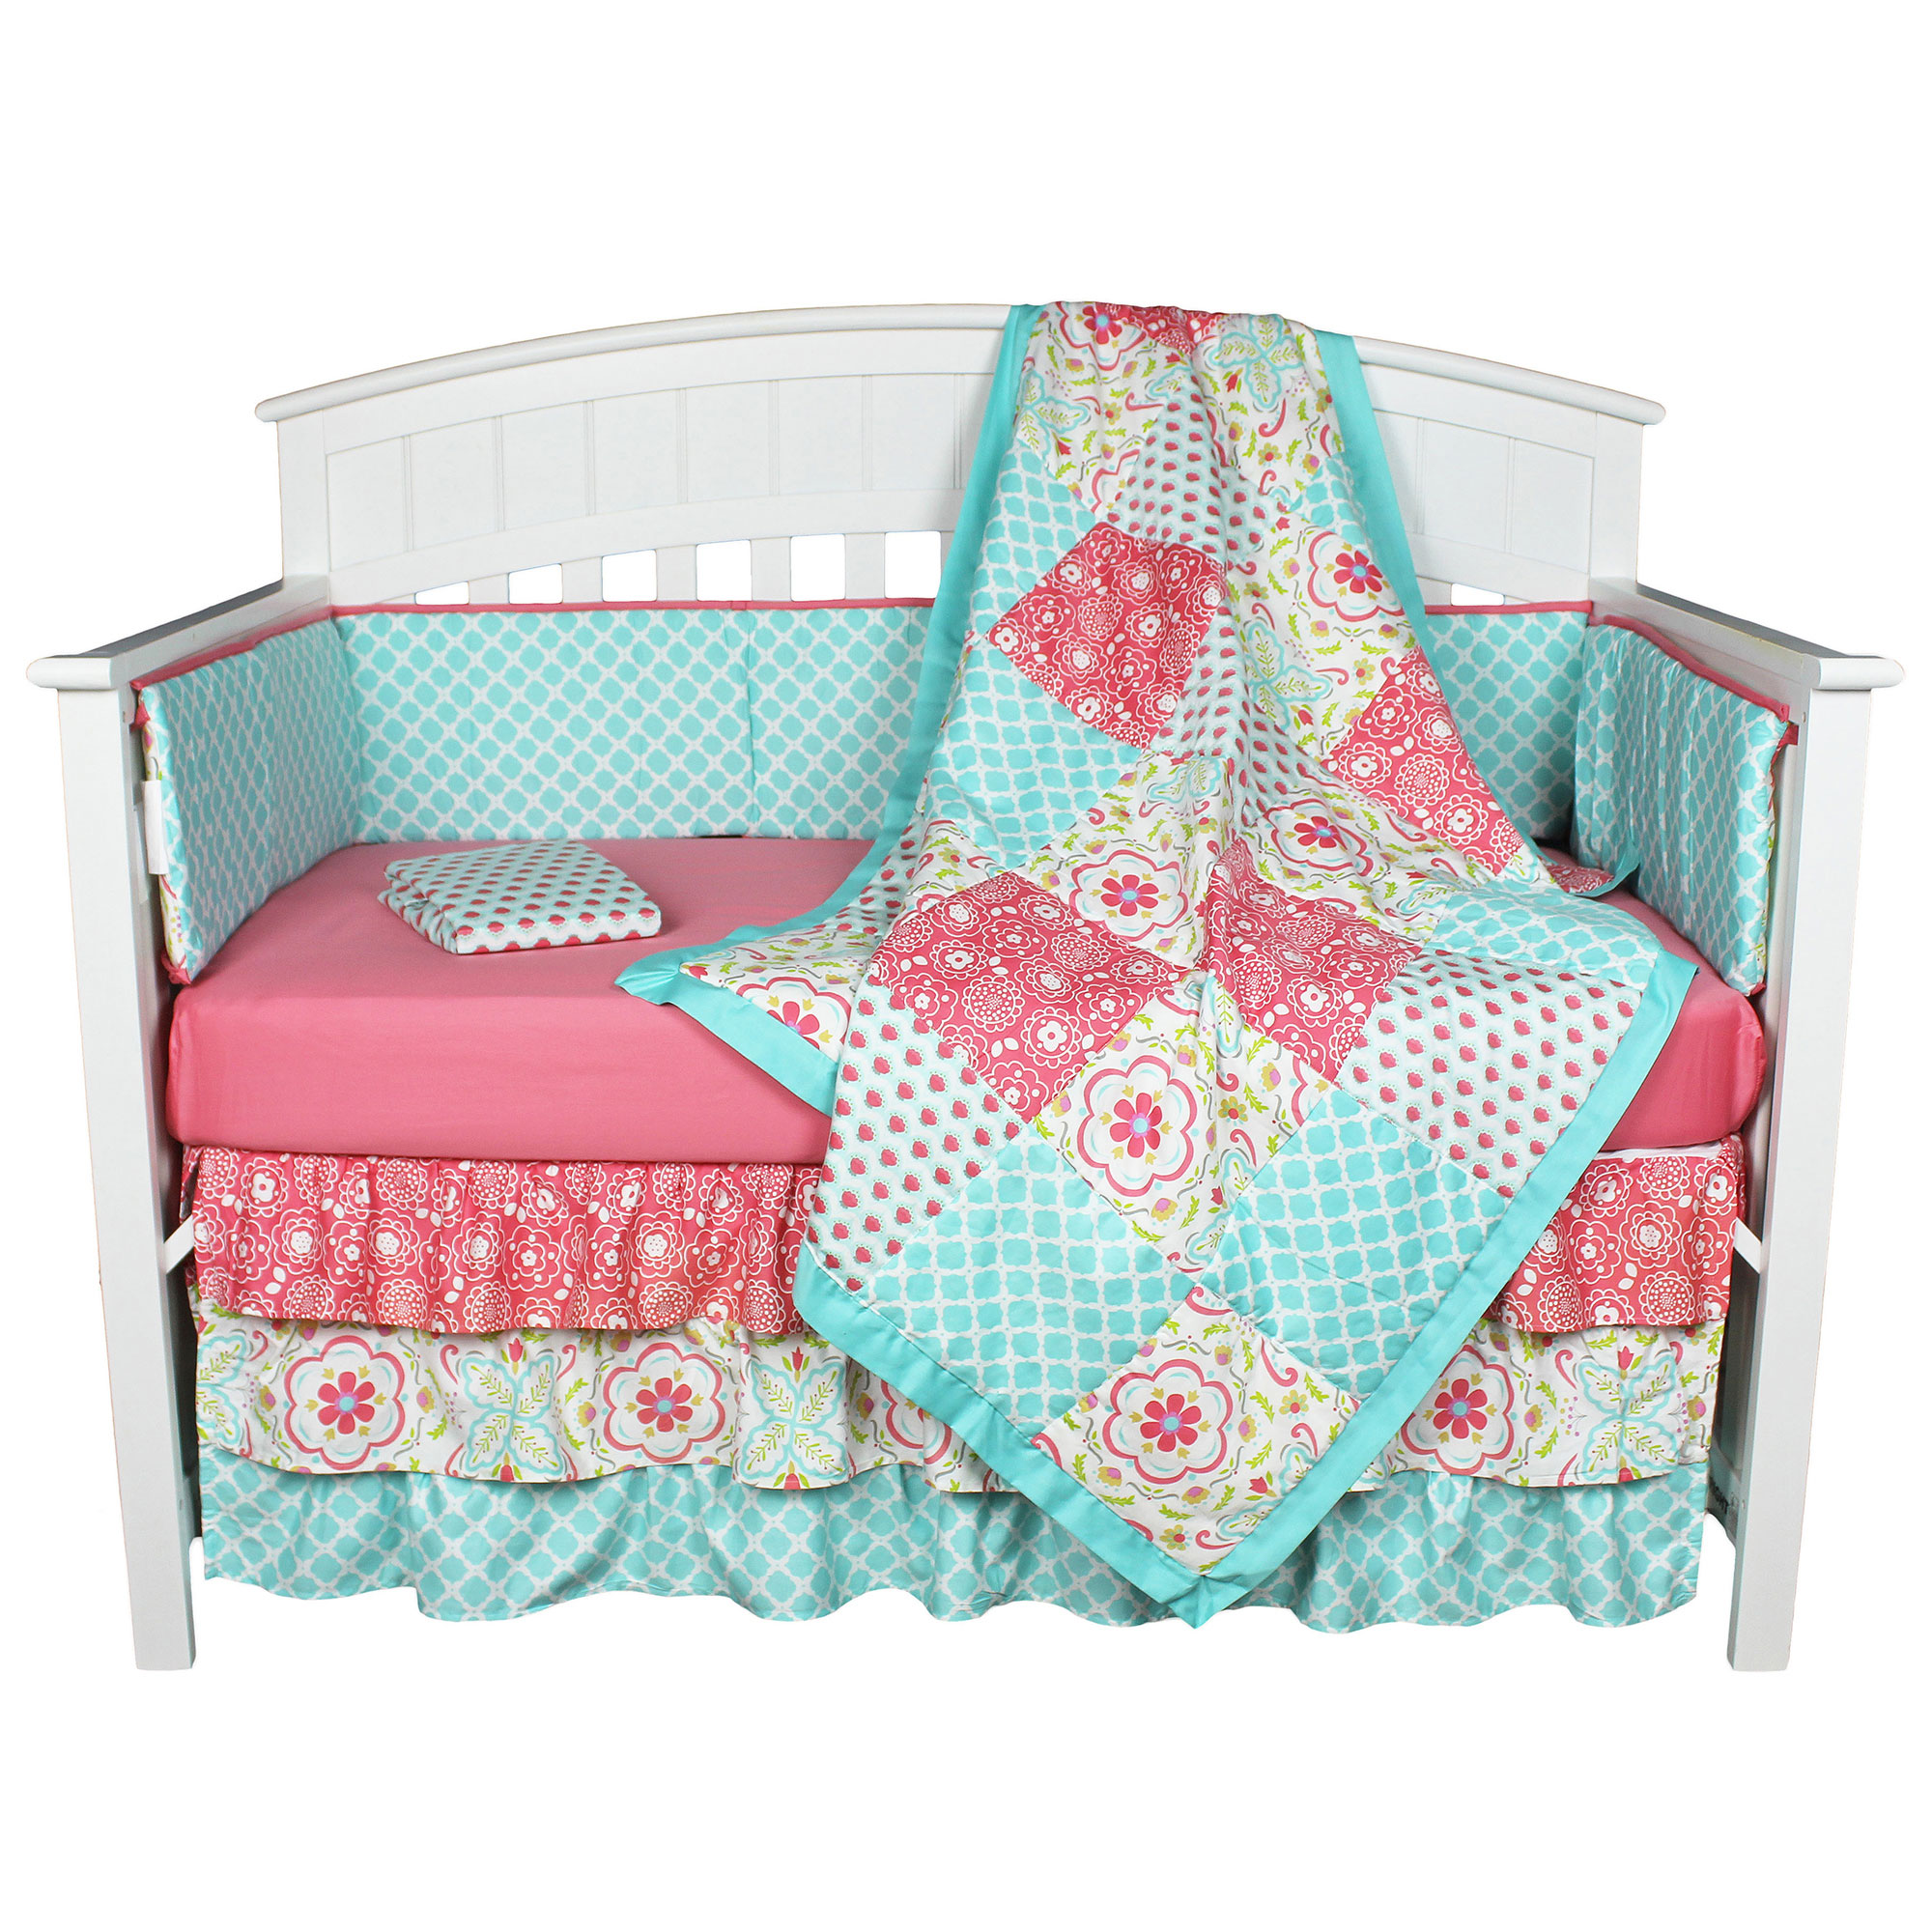 The Peanut Shell Baby Girl Crib Bedding Set - Coral and Aqua Floral Design - Gia 5 Piece Set Includes Coverlet, Bumper, Dust Ruffle, and Two Fitted Sheets